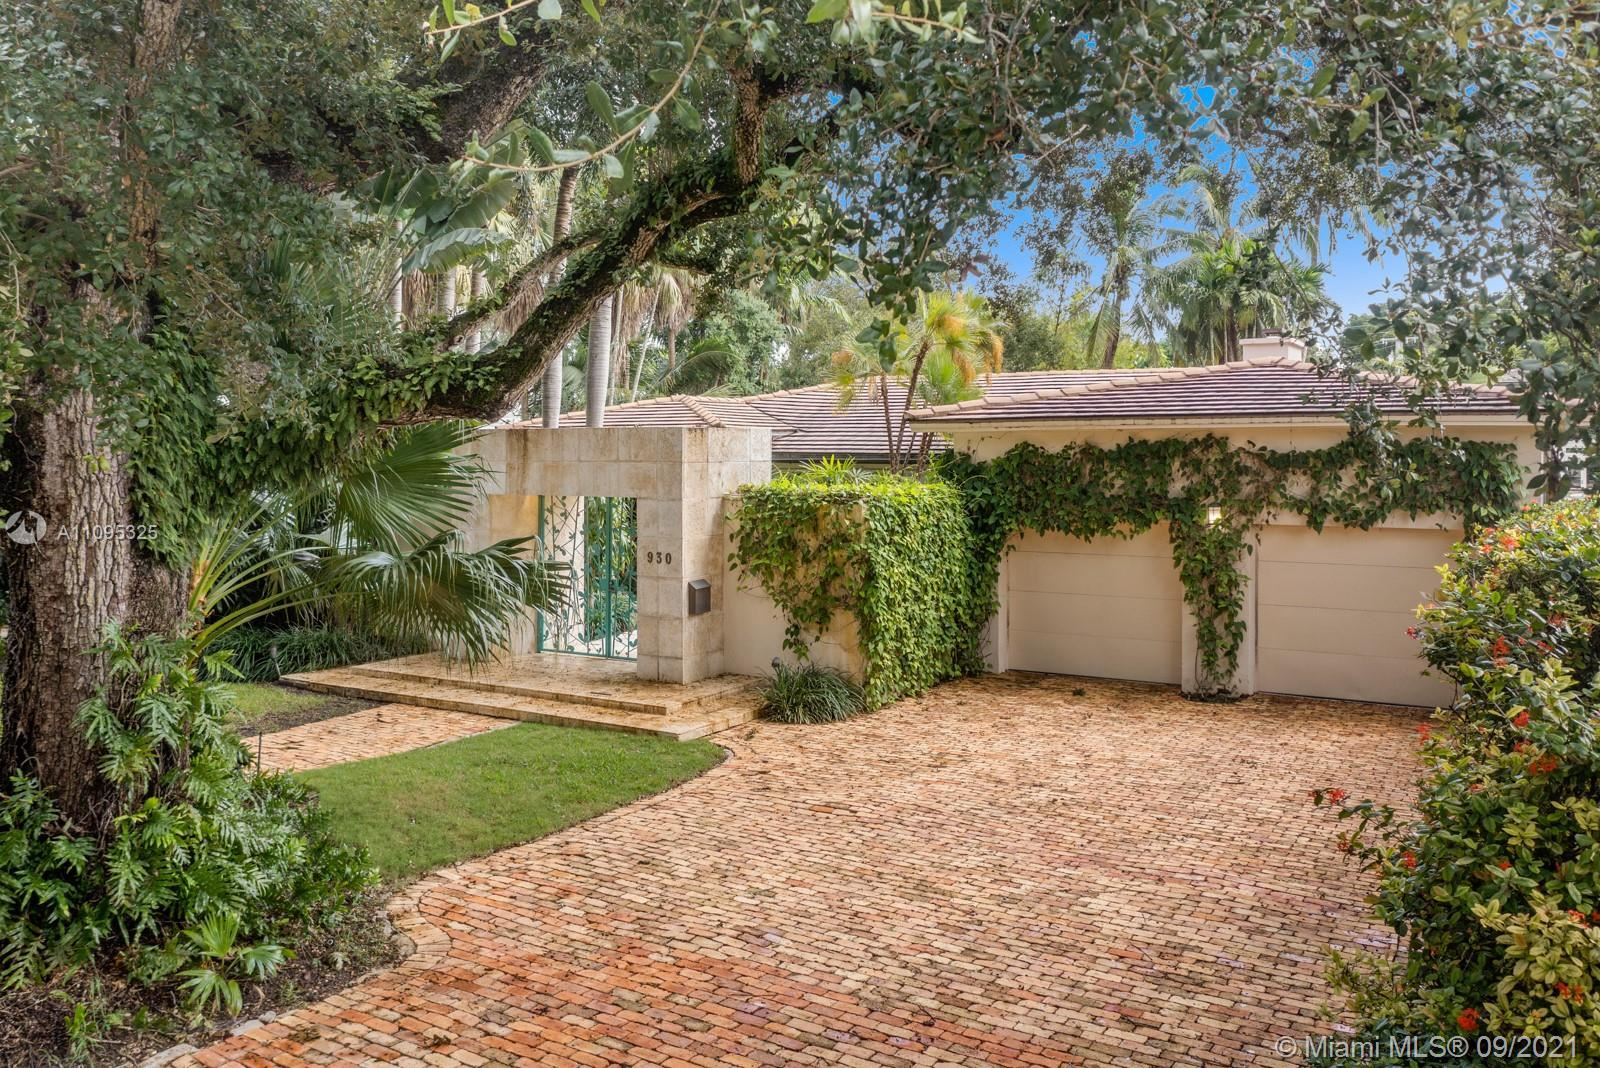 Photo of 930 Alfonso Ave, Coral Gables, FL 33146 (MLS # A11095325)